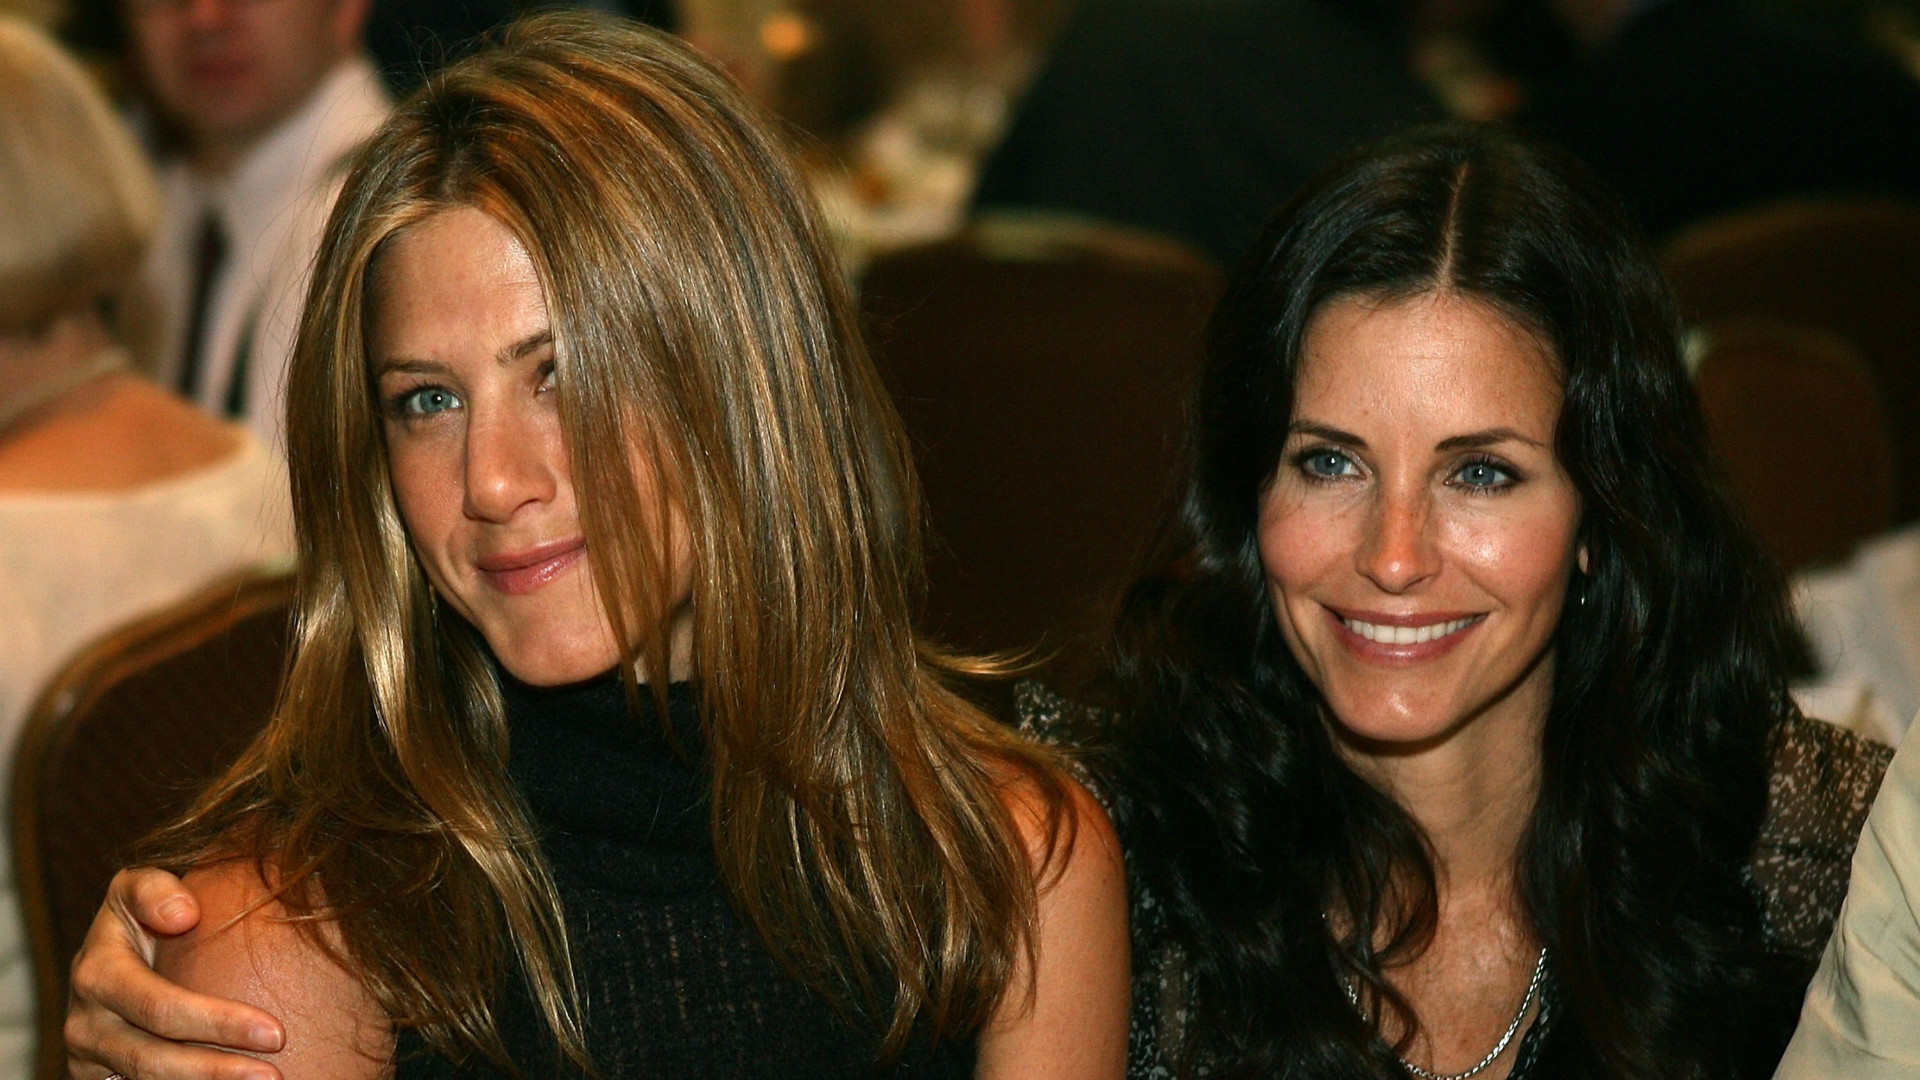 Friends co-stars Jennifer Aniston and Courteney Cox.